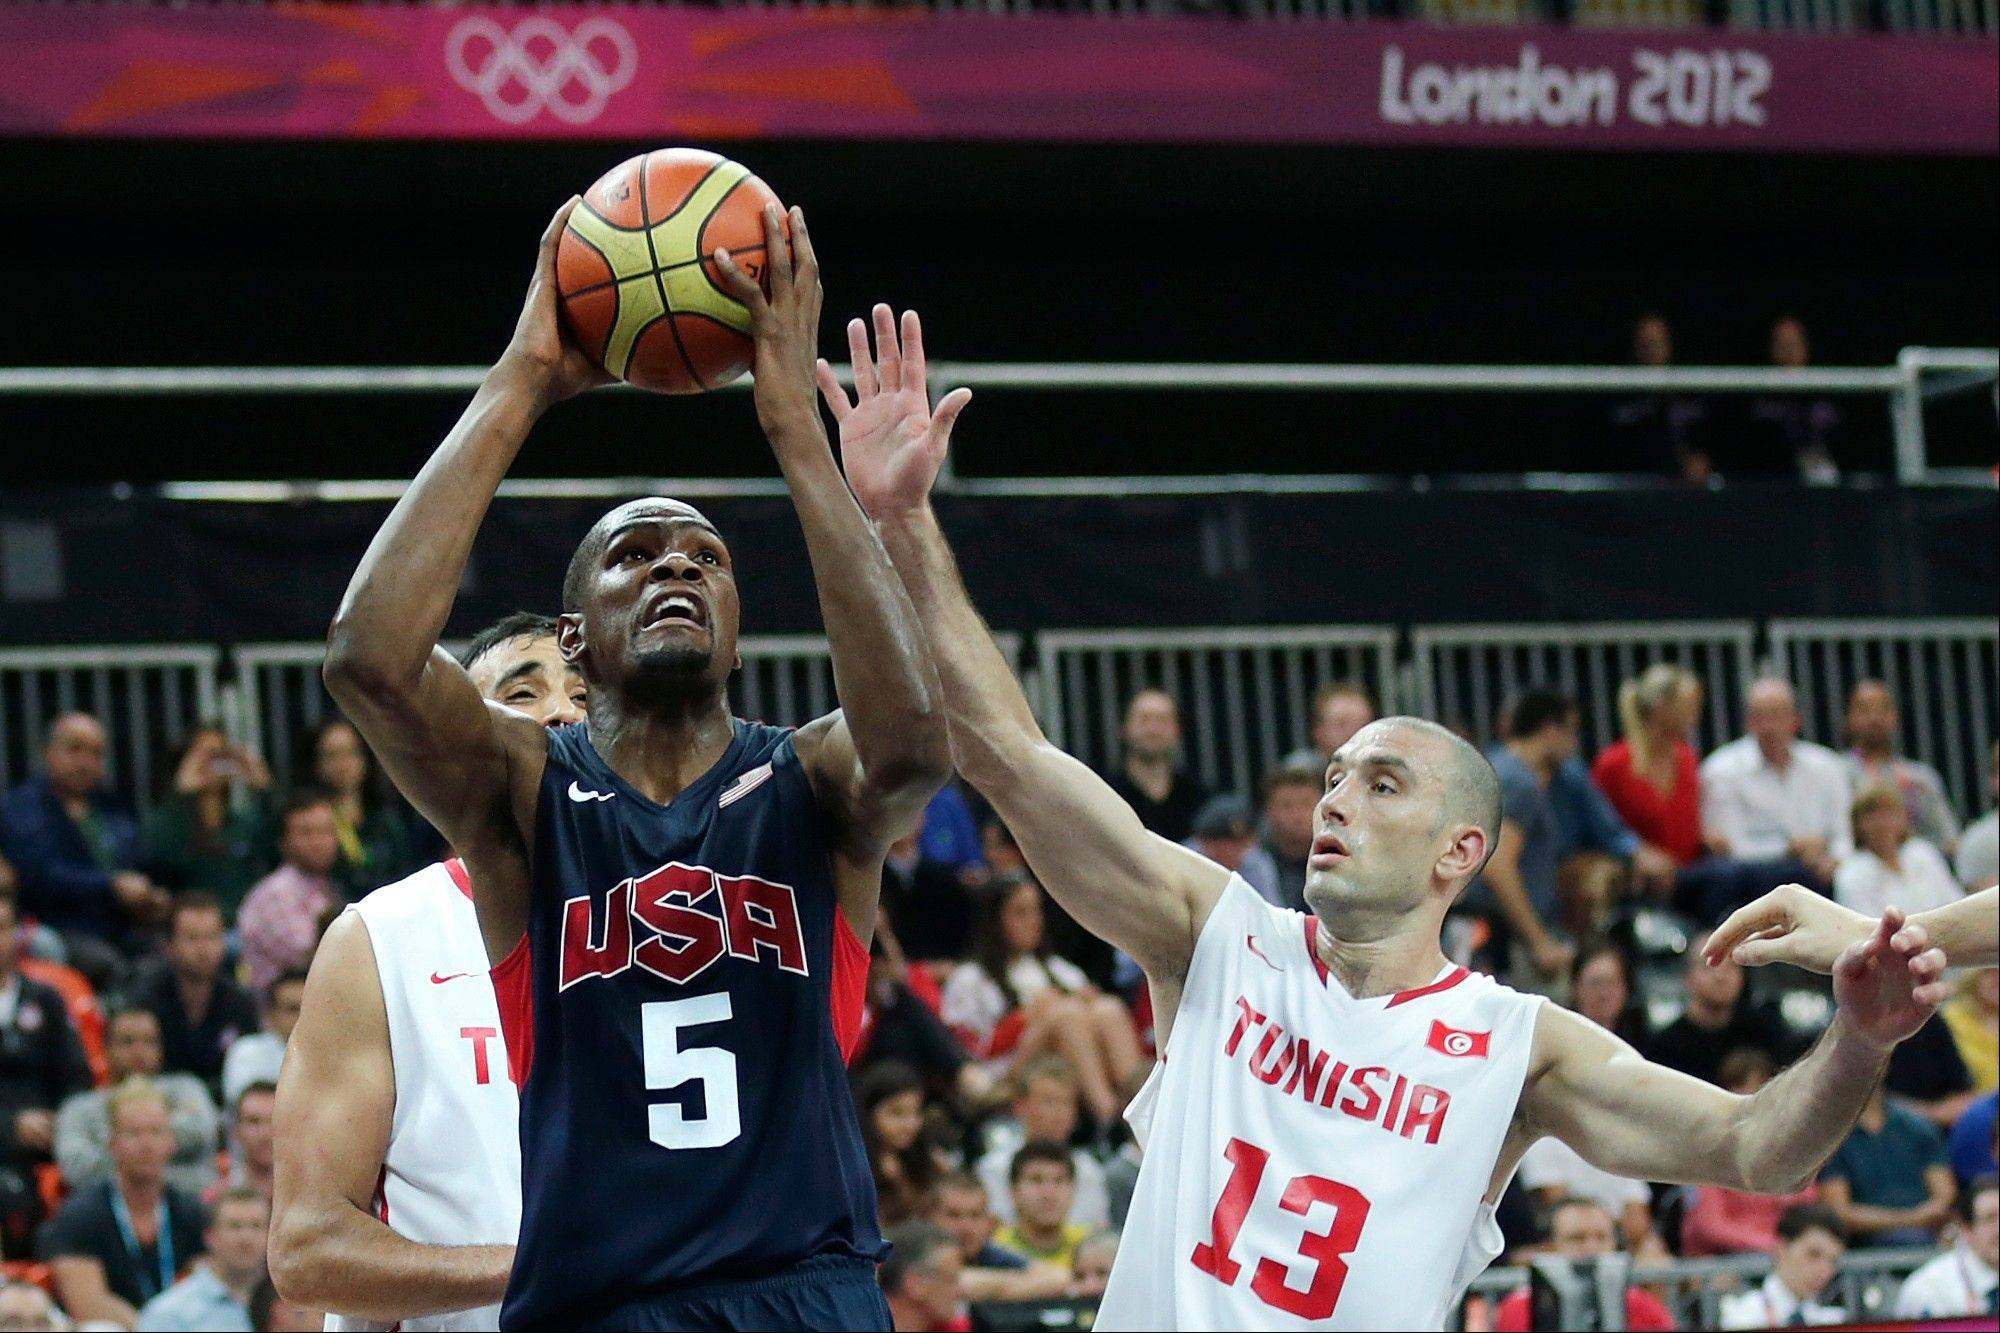 Team USA's Kevin Durant, left, drives to the basket against Tunisia's Amine Rzig during Tuesday's game in the London Olympics. Thursday's game against Nigeria is the second straight, and perhaps last, lesser opponent for the Americans.